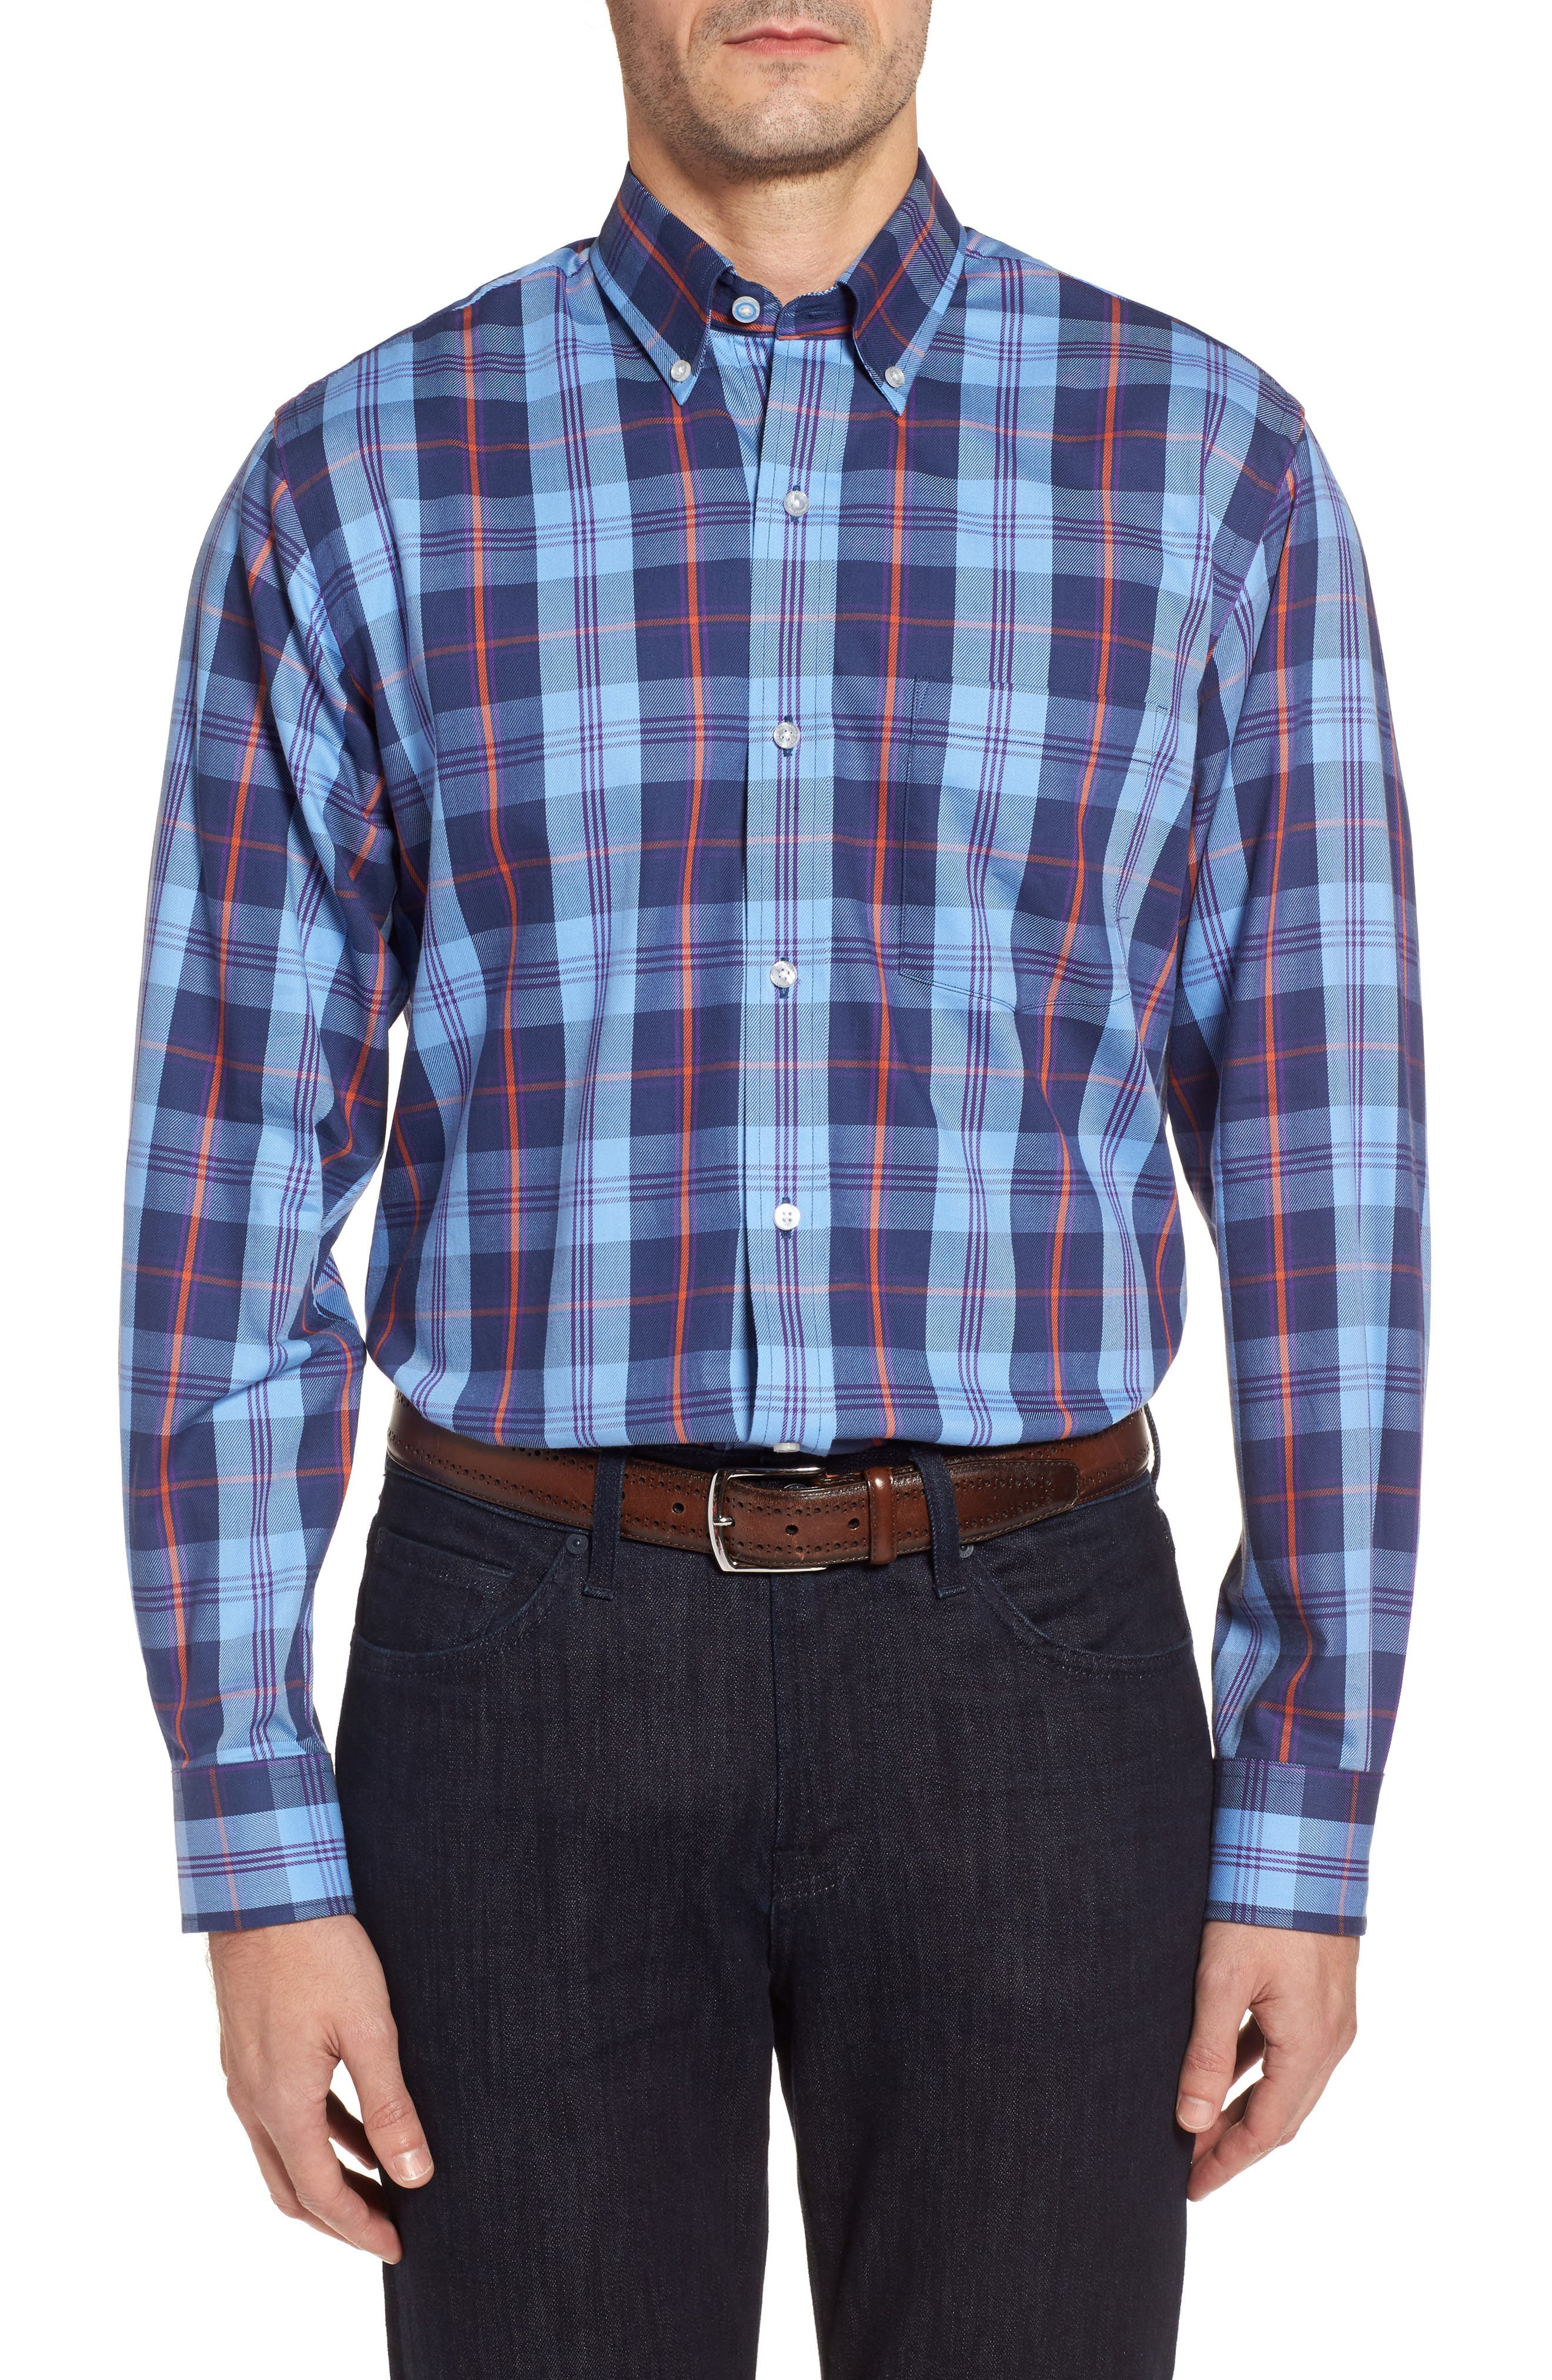 Delcambre Plaid Twill Sport Shirt,                             Main thumbnail 1, color,